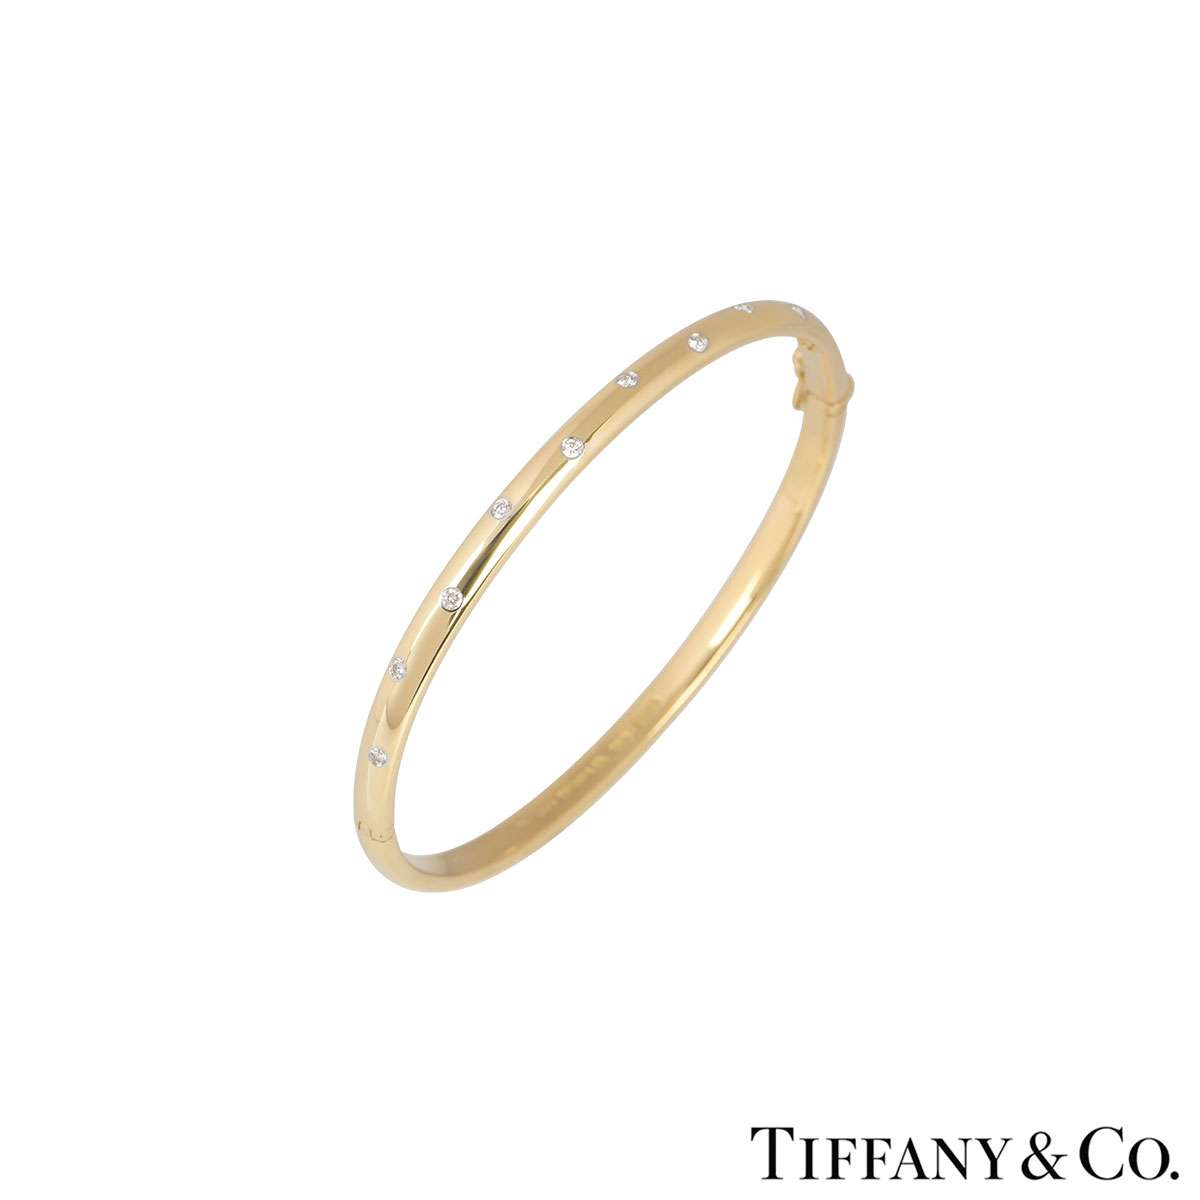 Tiffany & Co. Yellow Gold Etoile Diamond Bangle